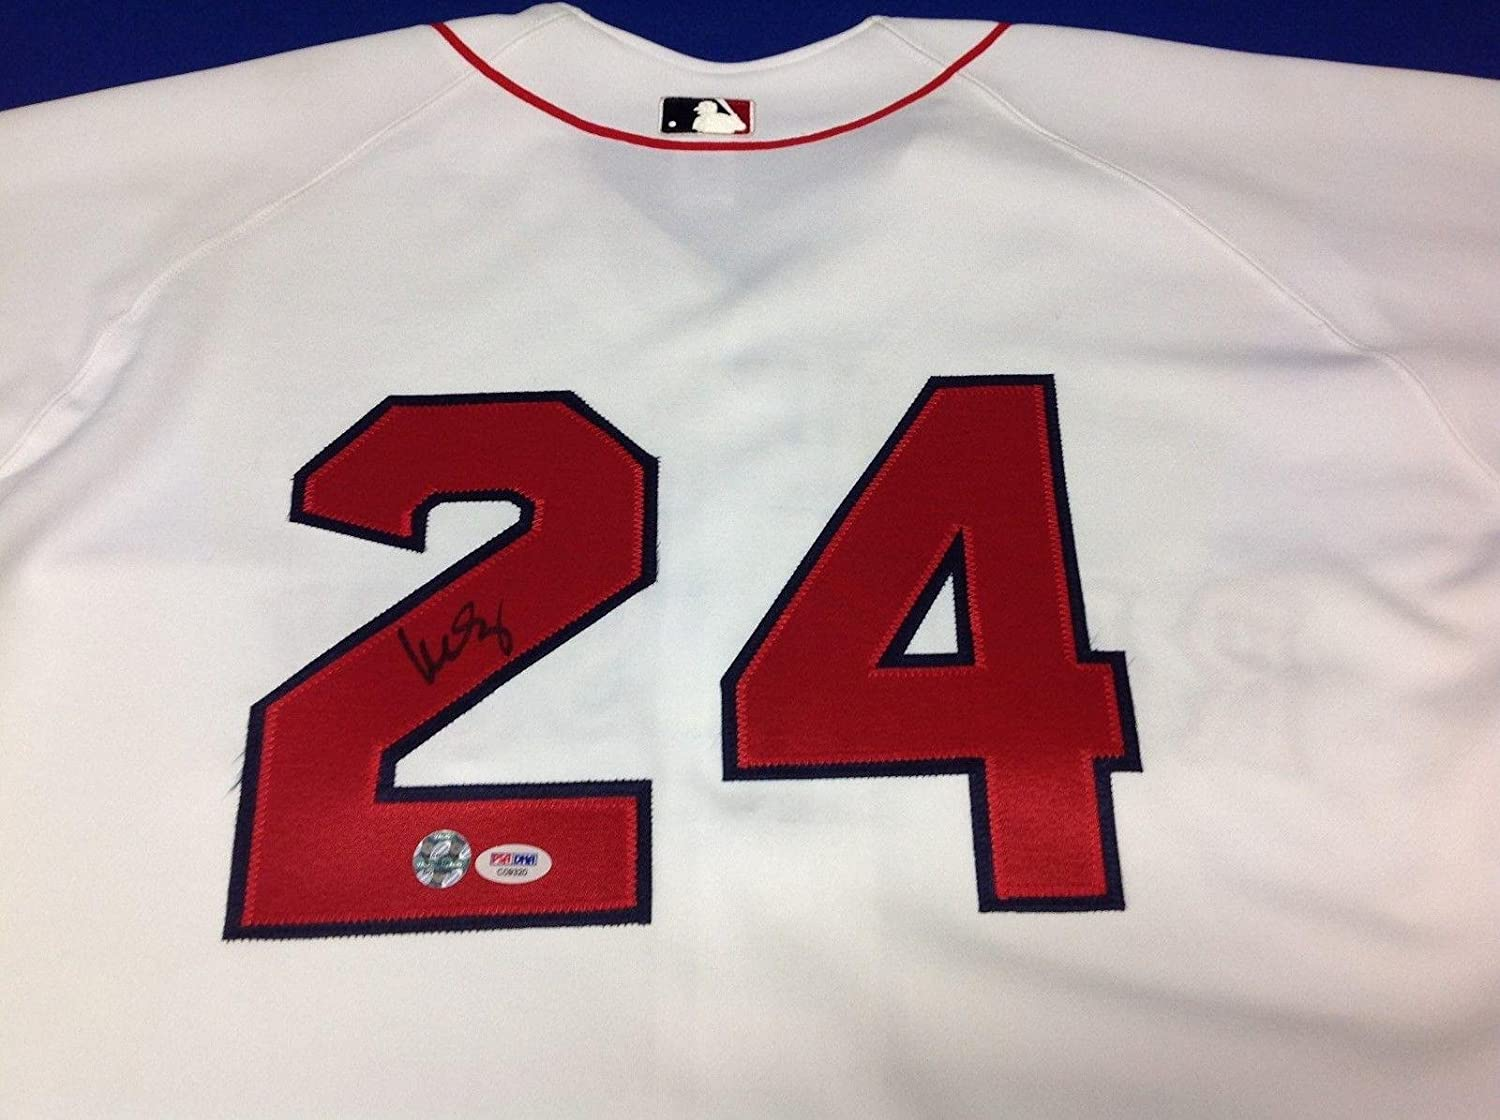 00f55215e Amazon.com  Signed Manny Ramirez Jersey - PSA DNA COA   C09320 -  Autographed MLB Jerseys  Sports Collectibles